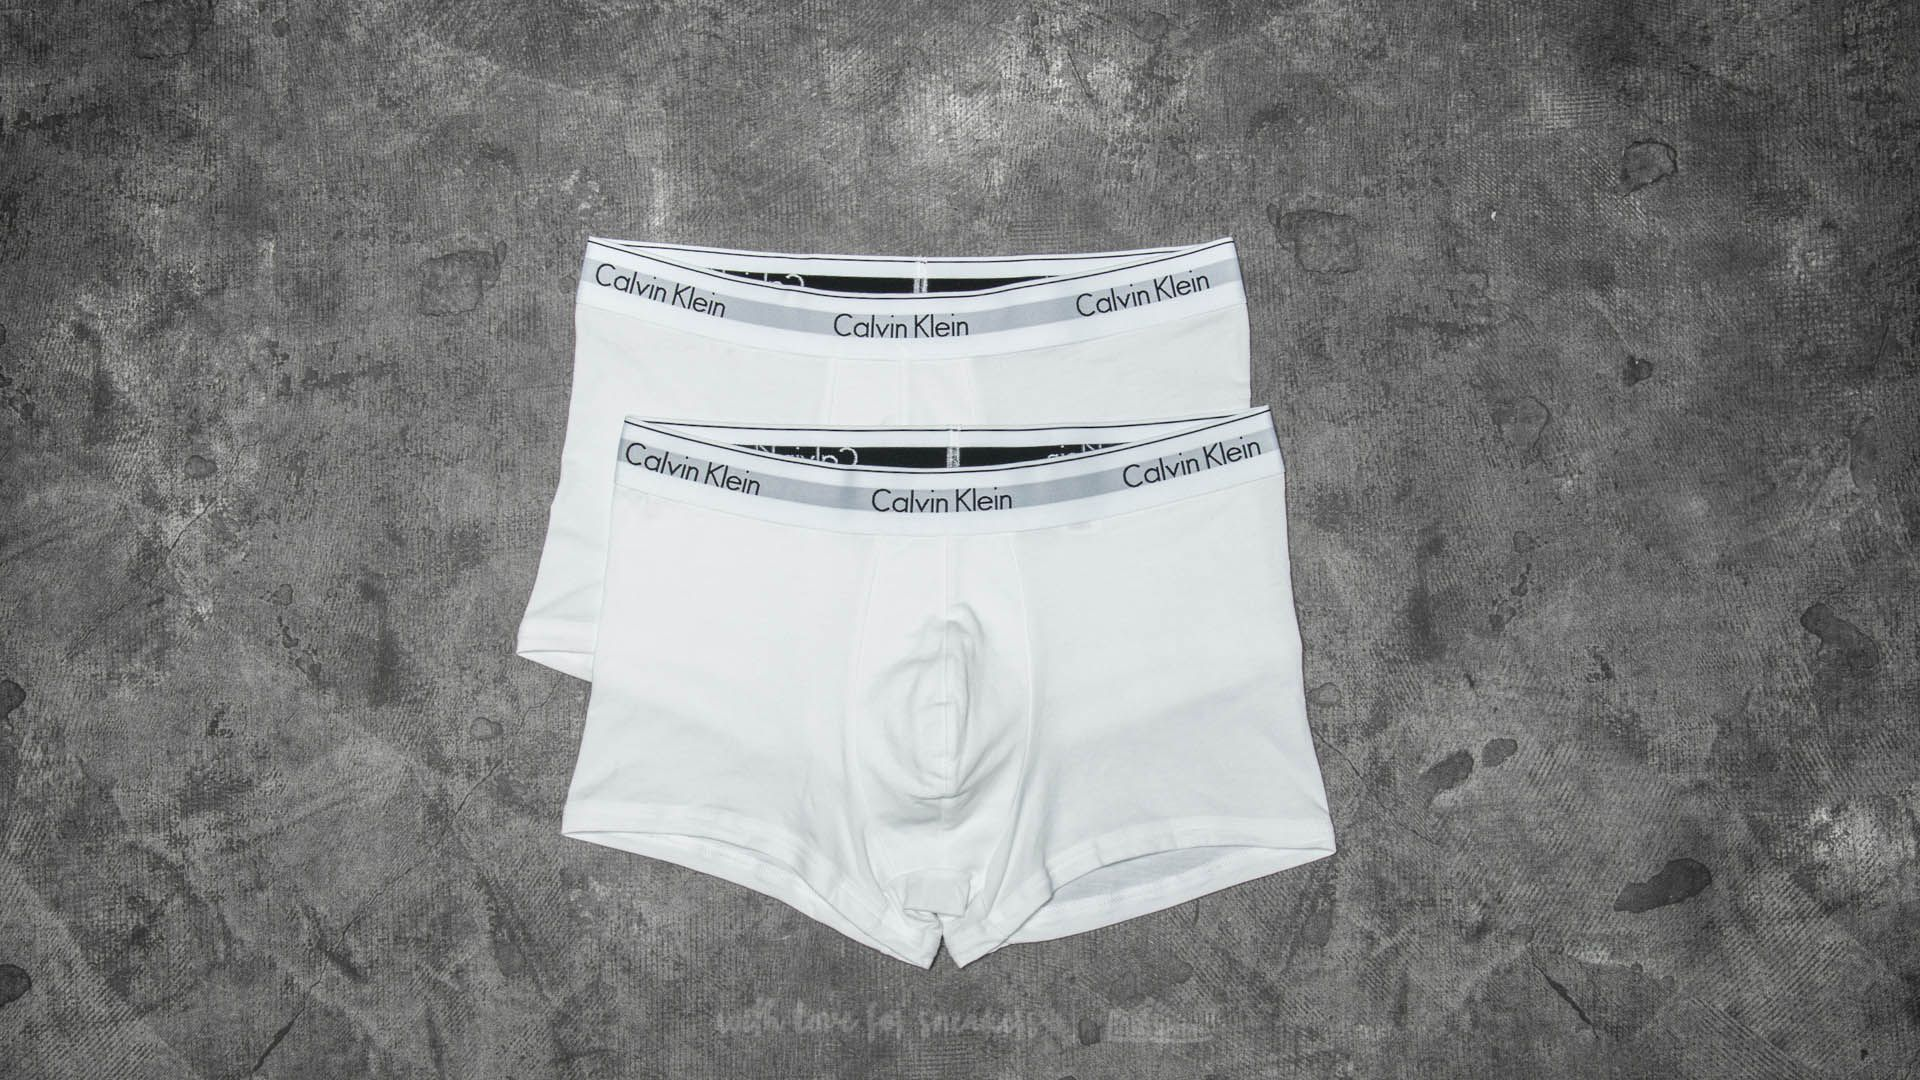 Boxer shorts Calvin Klein Trunks 2 Pack White